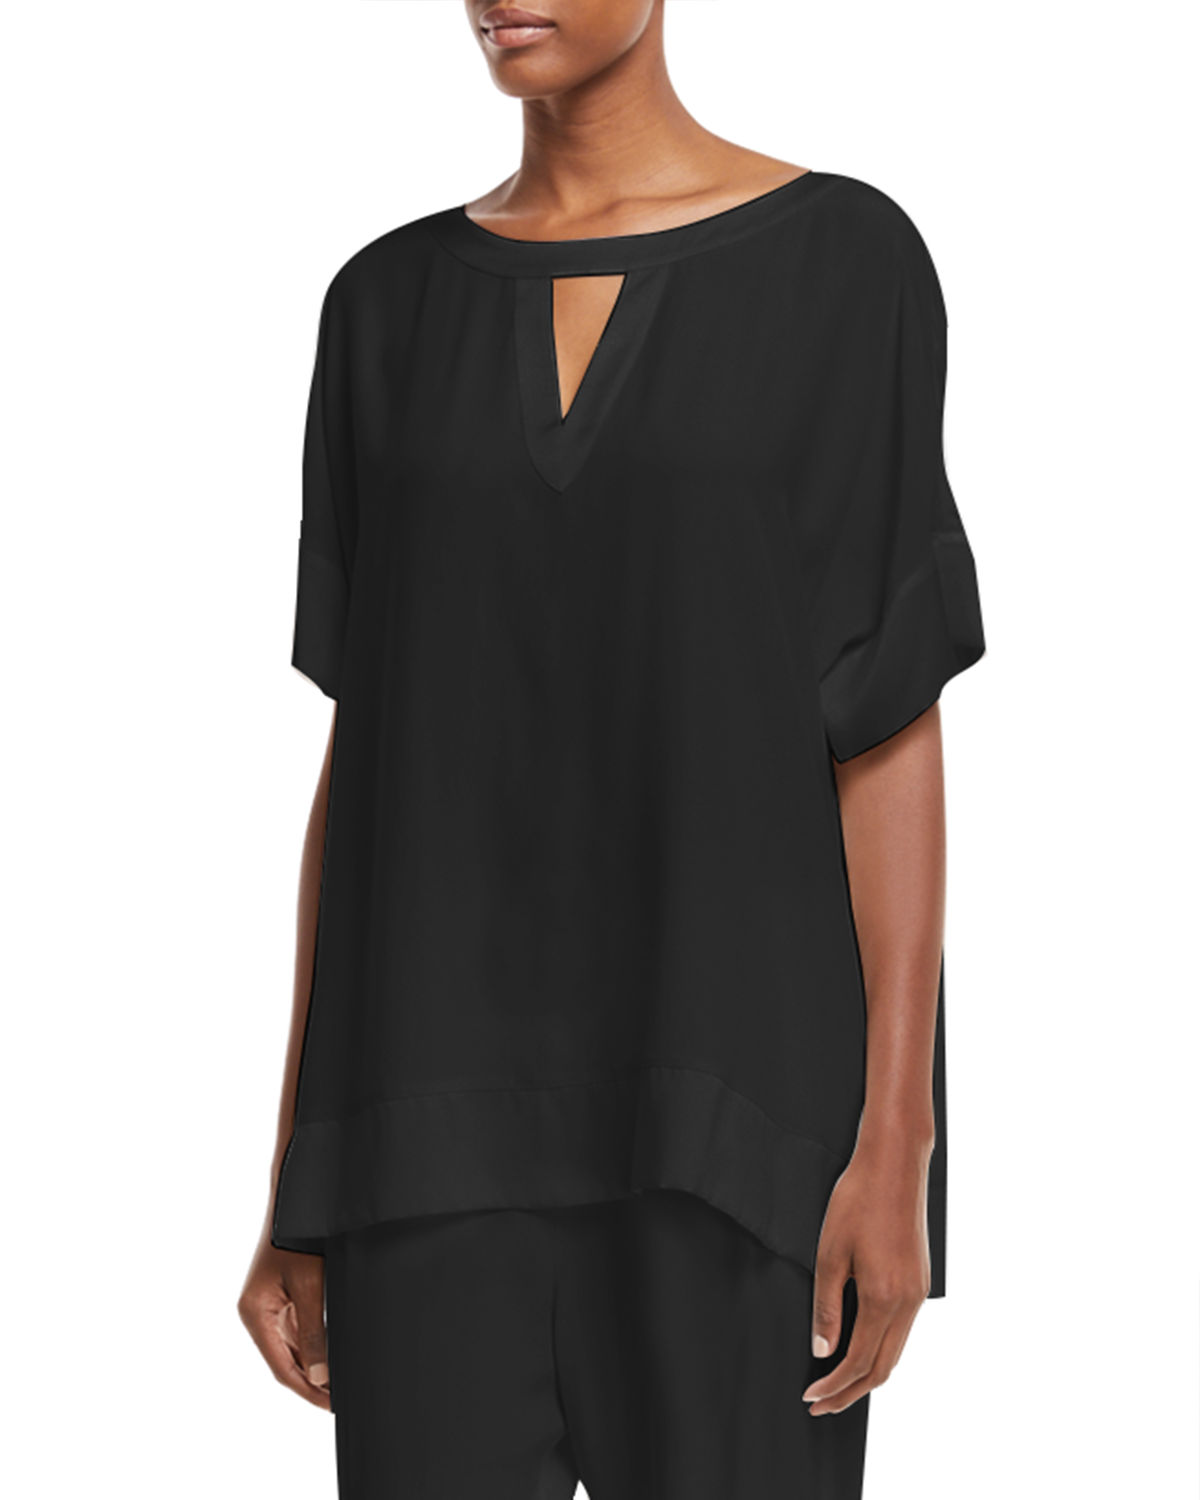 Go Silk SILK CREPE OPEN-DETAIL TOP, PLUS SIZE